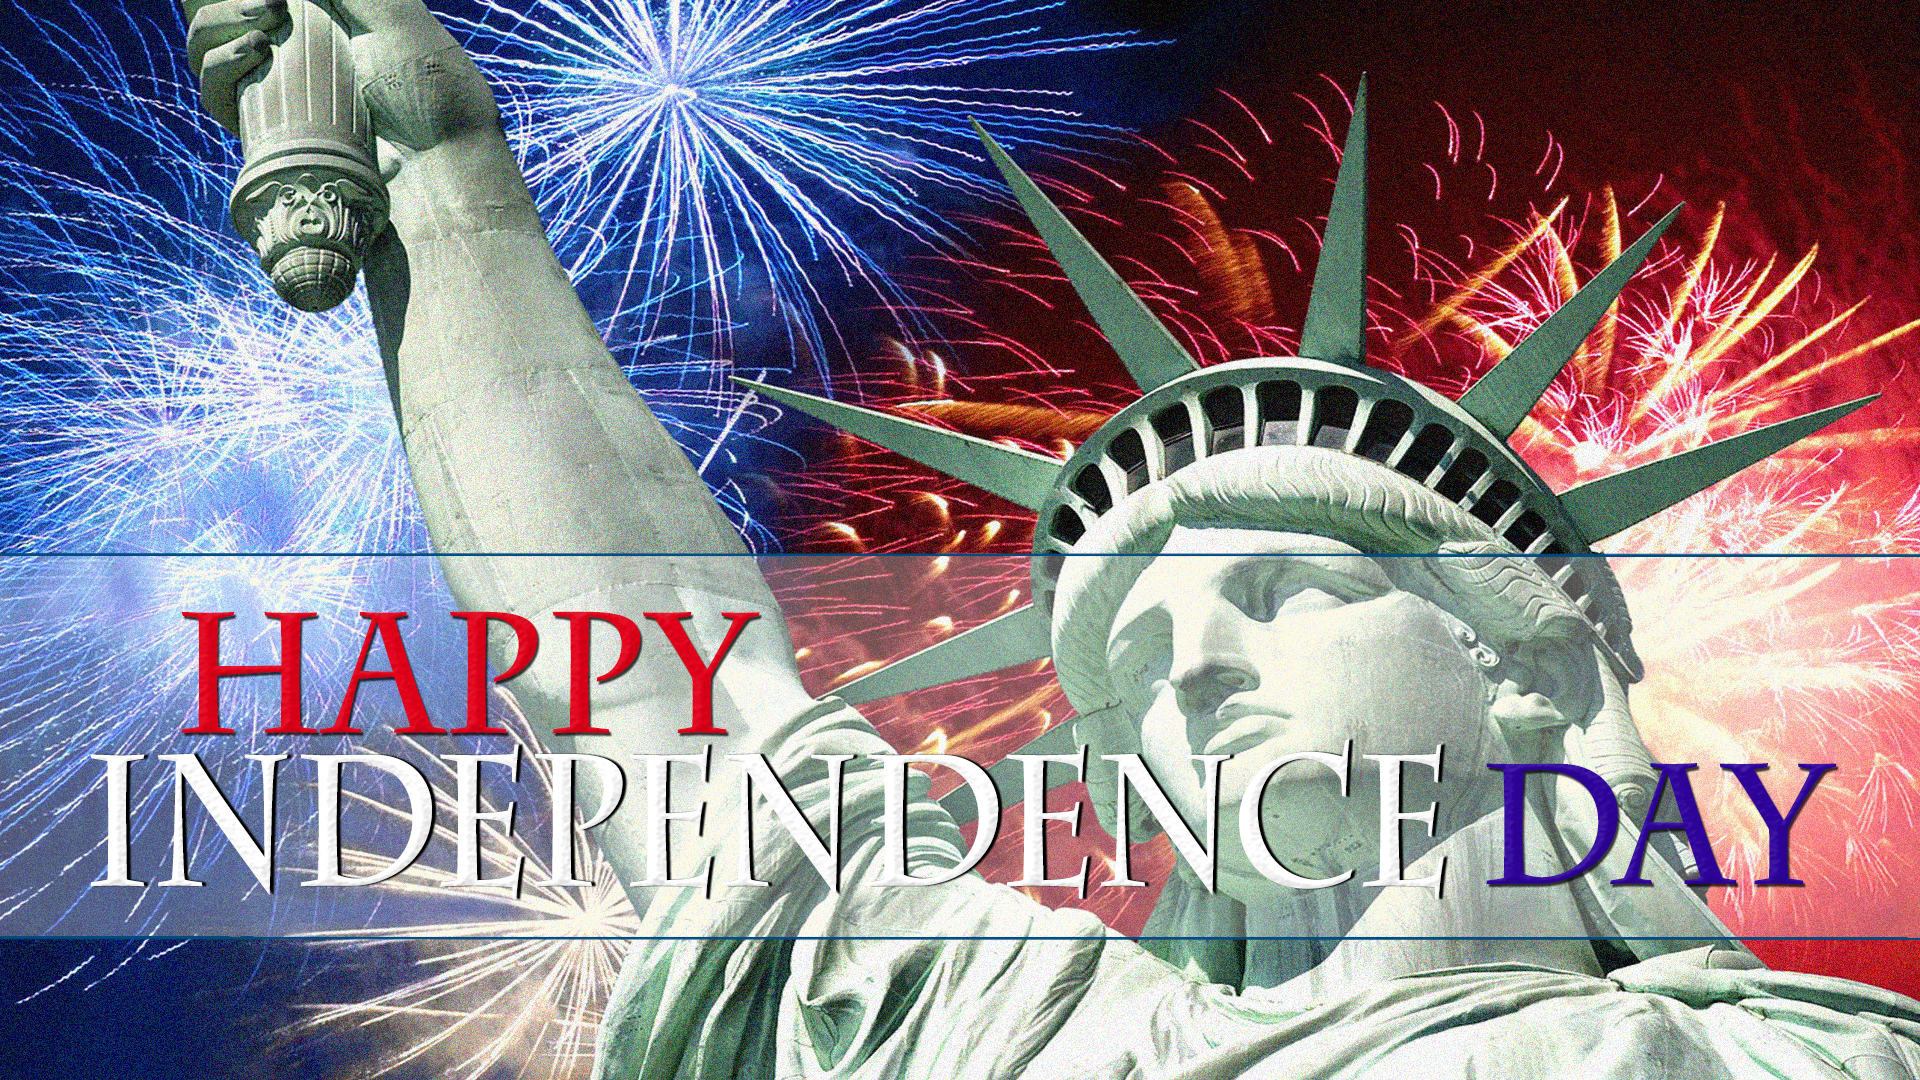 Summer is Tick Season, Happy 4th of July! Fireworks safety ...